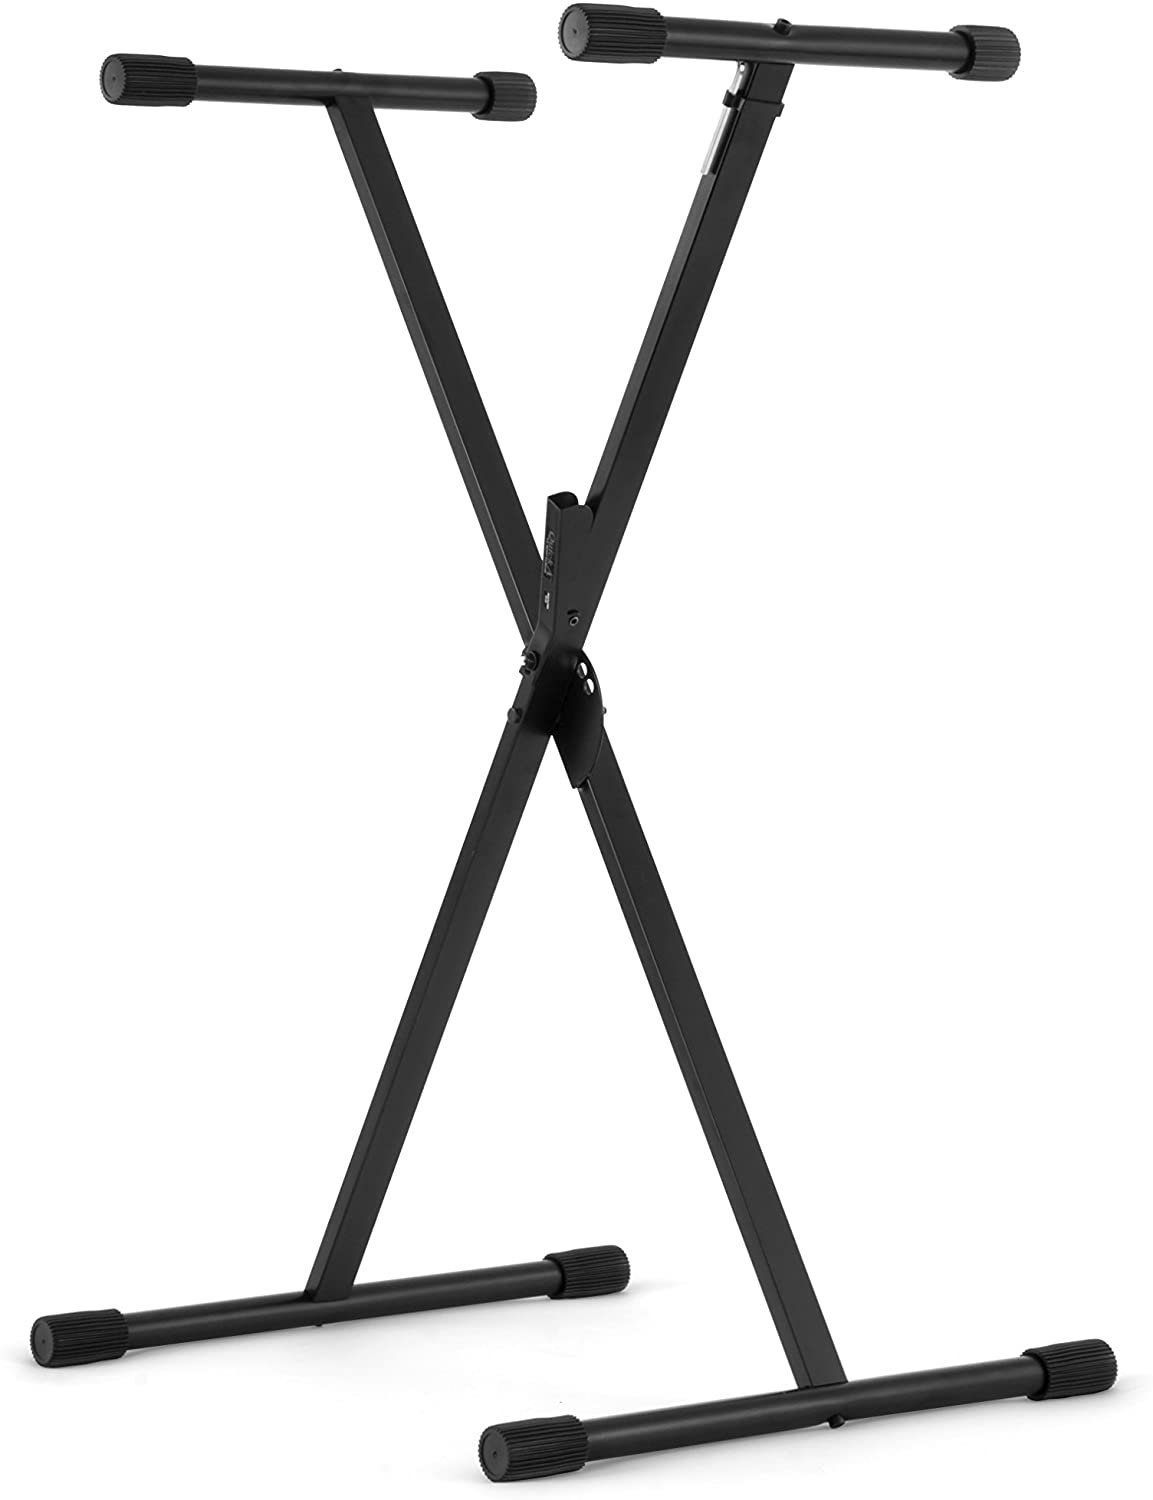 Nomad NKS-K119 Single X-Style Keyboard Stand with Lever Action